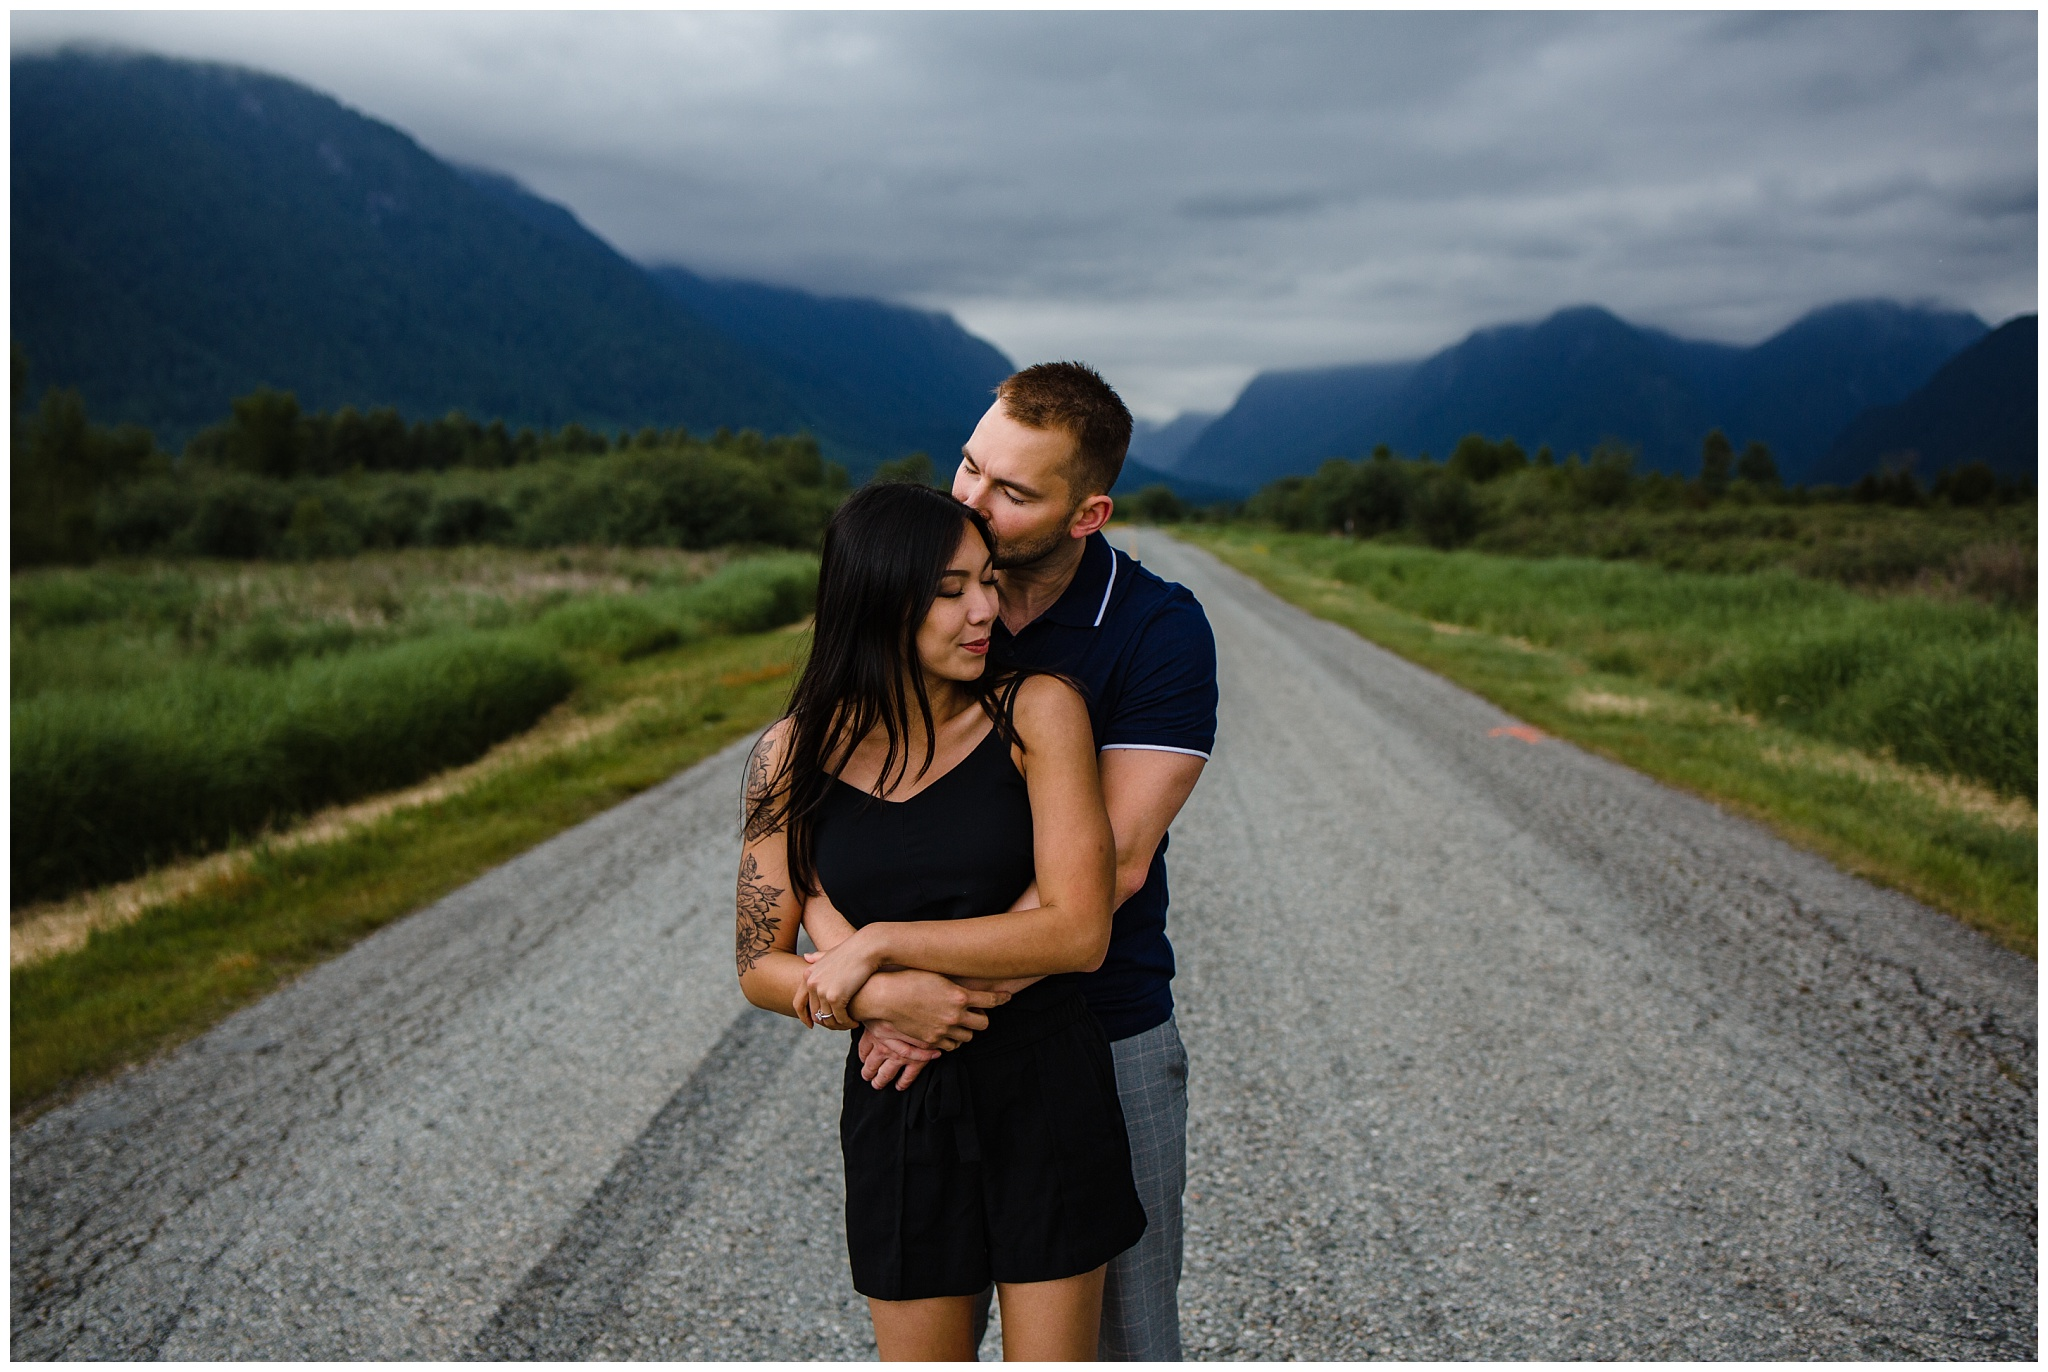 Pitt Lake Engagement Photos Maple Ridge Candid Fun Romantic Couples Photography_0023.jpg